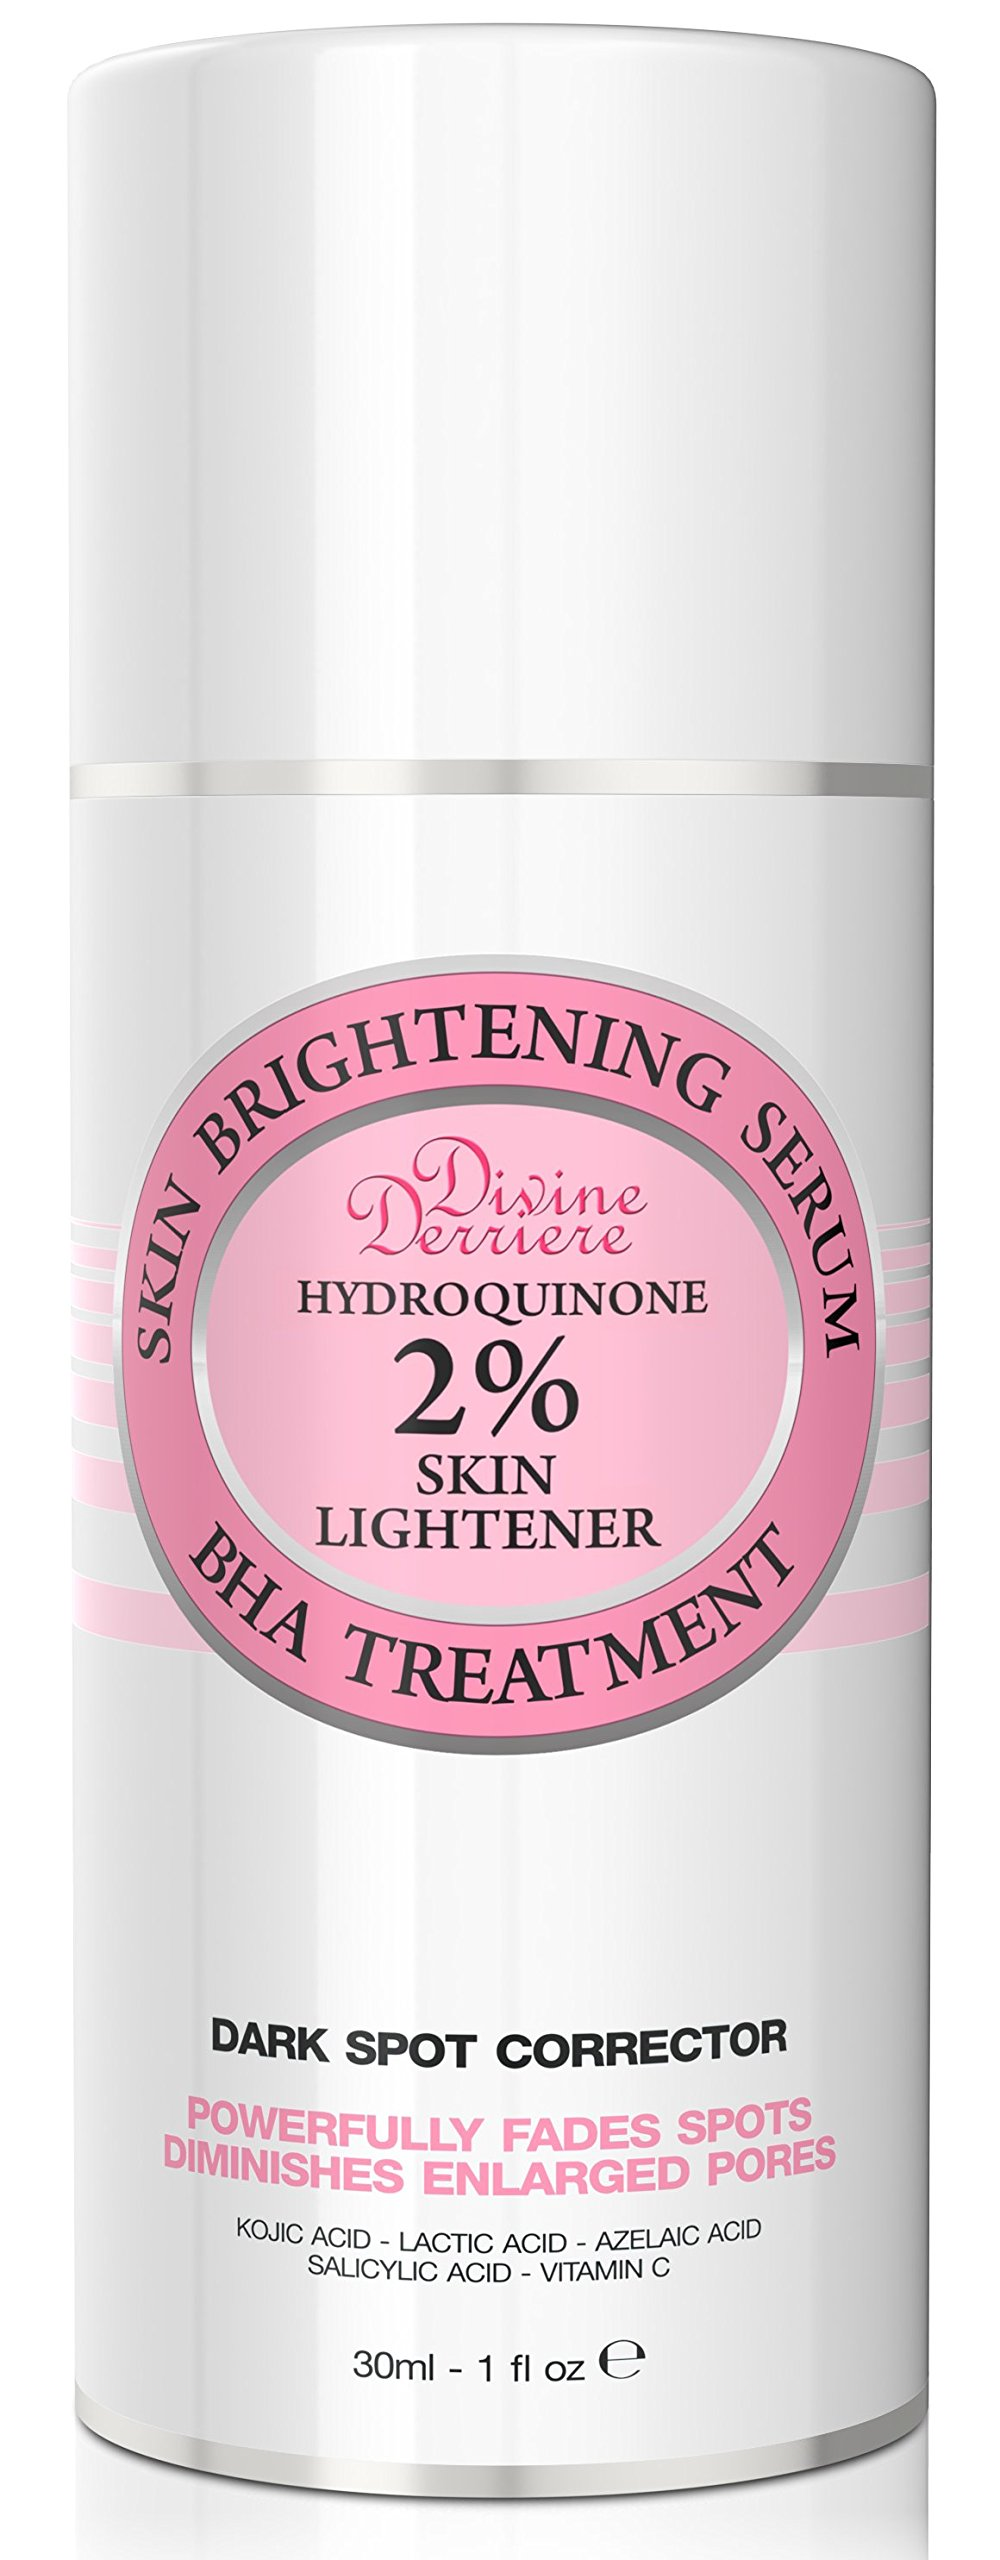 Skin Lightening 2% Hydroquinone Dark Spot Corrector Remover For Face & Melasma Treatment Fade Cream - Contains Vitamin C, Salicylic Acid, Kojic Acid, Azelaic Acid and Lactic Acid Peel 1 oz by DIVINE DERRIERE